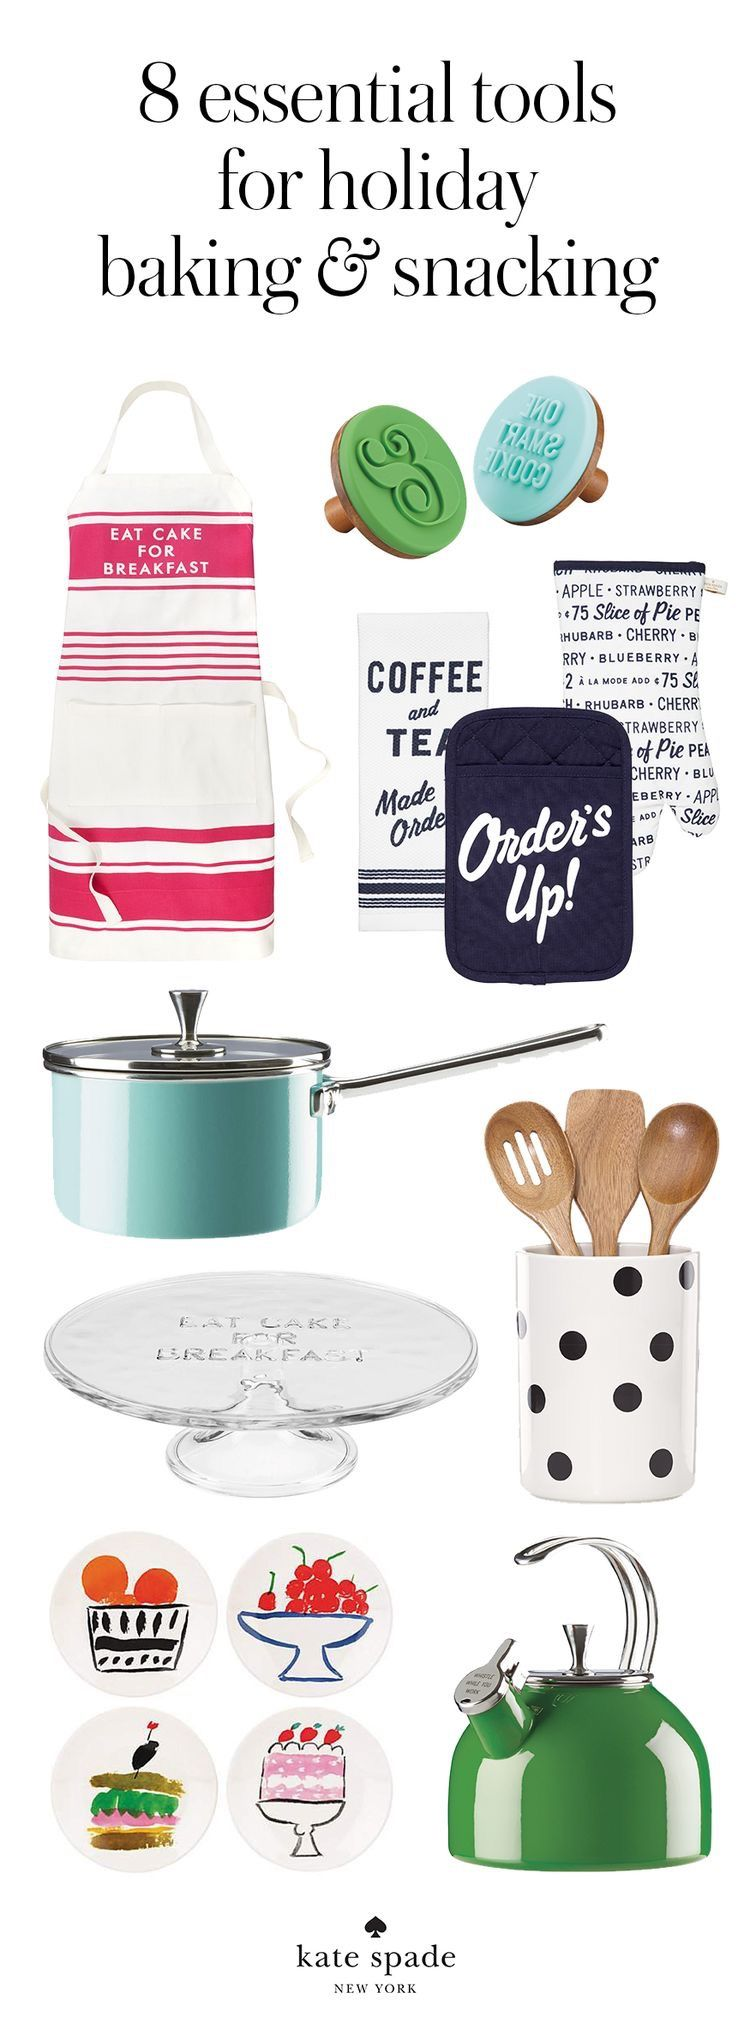 8 Essential Tools for Holiday Baking + Snacking | Kate Spade New York